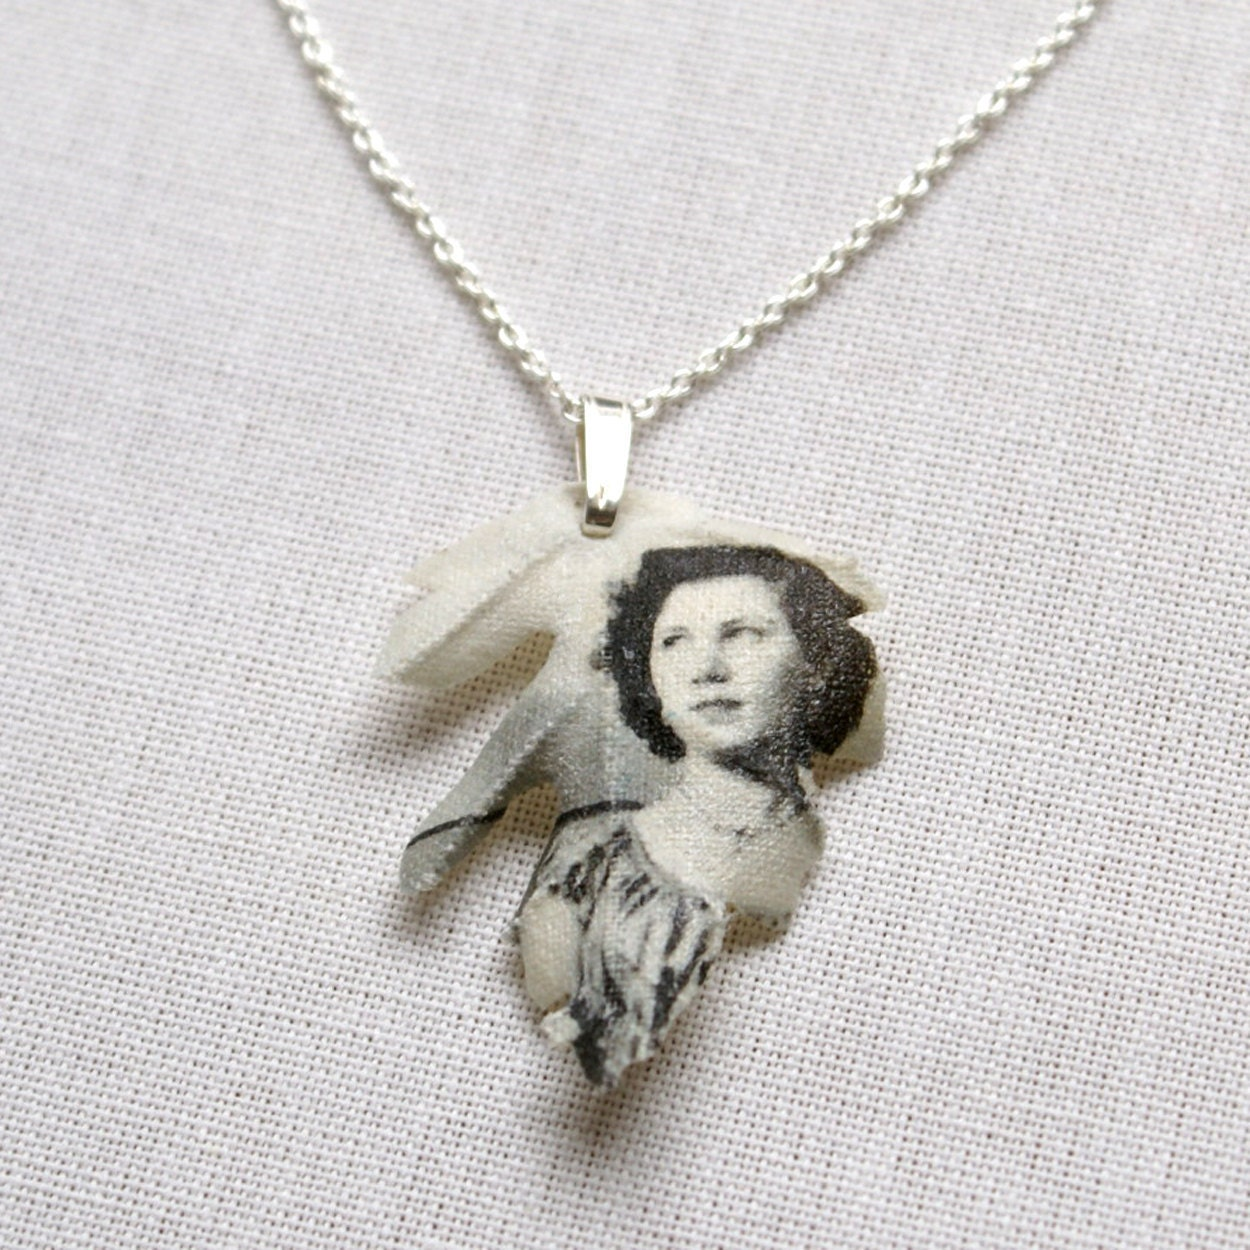 Custom made silver necklace with Oak leaf pendant printed with your photograph